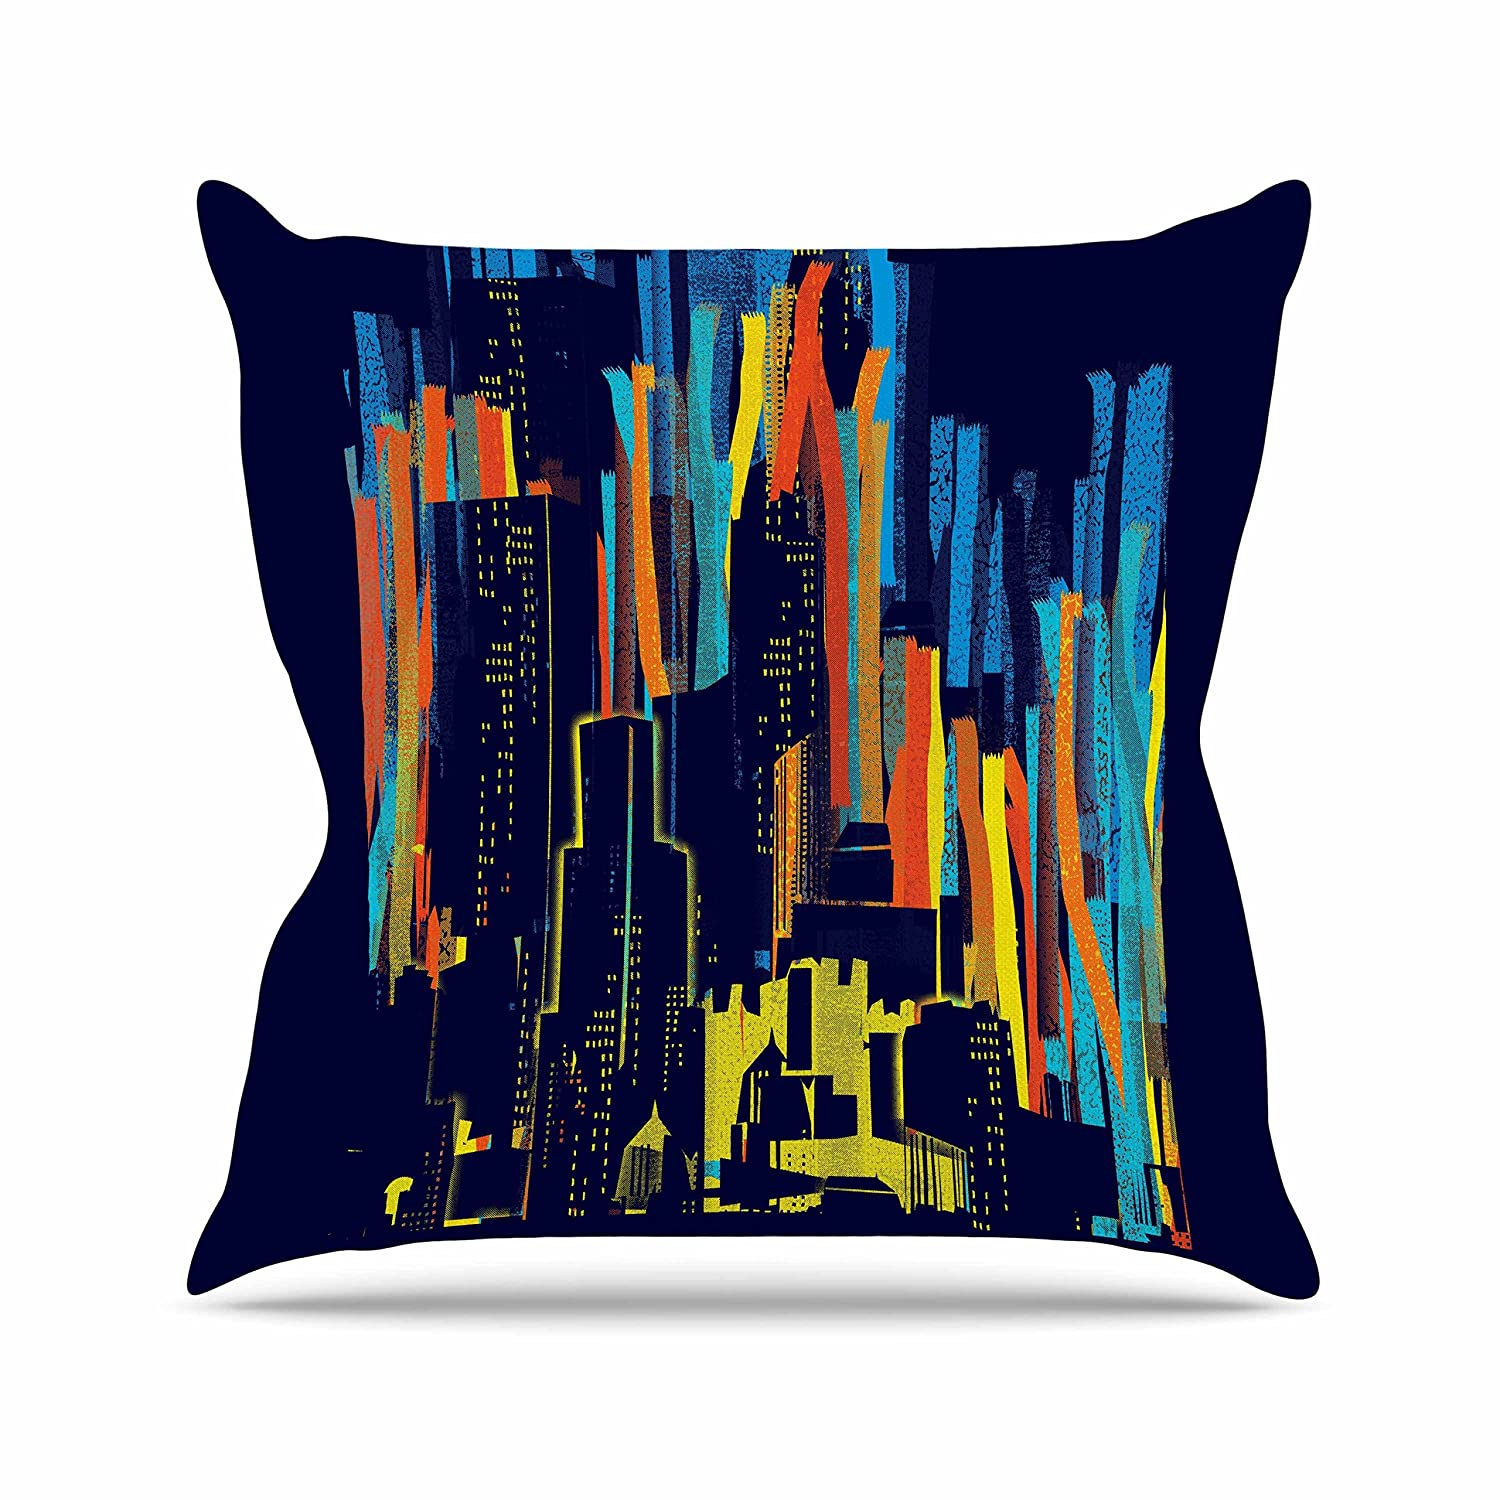 16 by 16 Kess InHouse Frederic Levy-Hadida Strippy City Blue Multicolor Throw Pillow